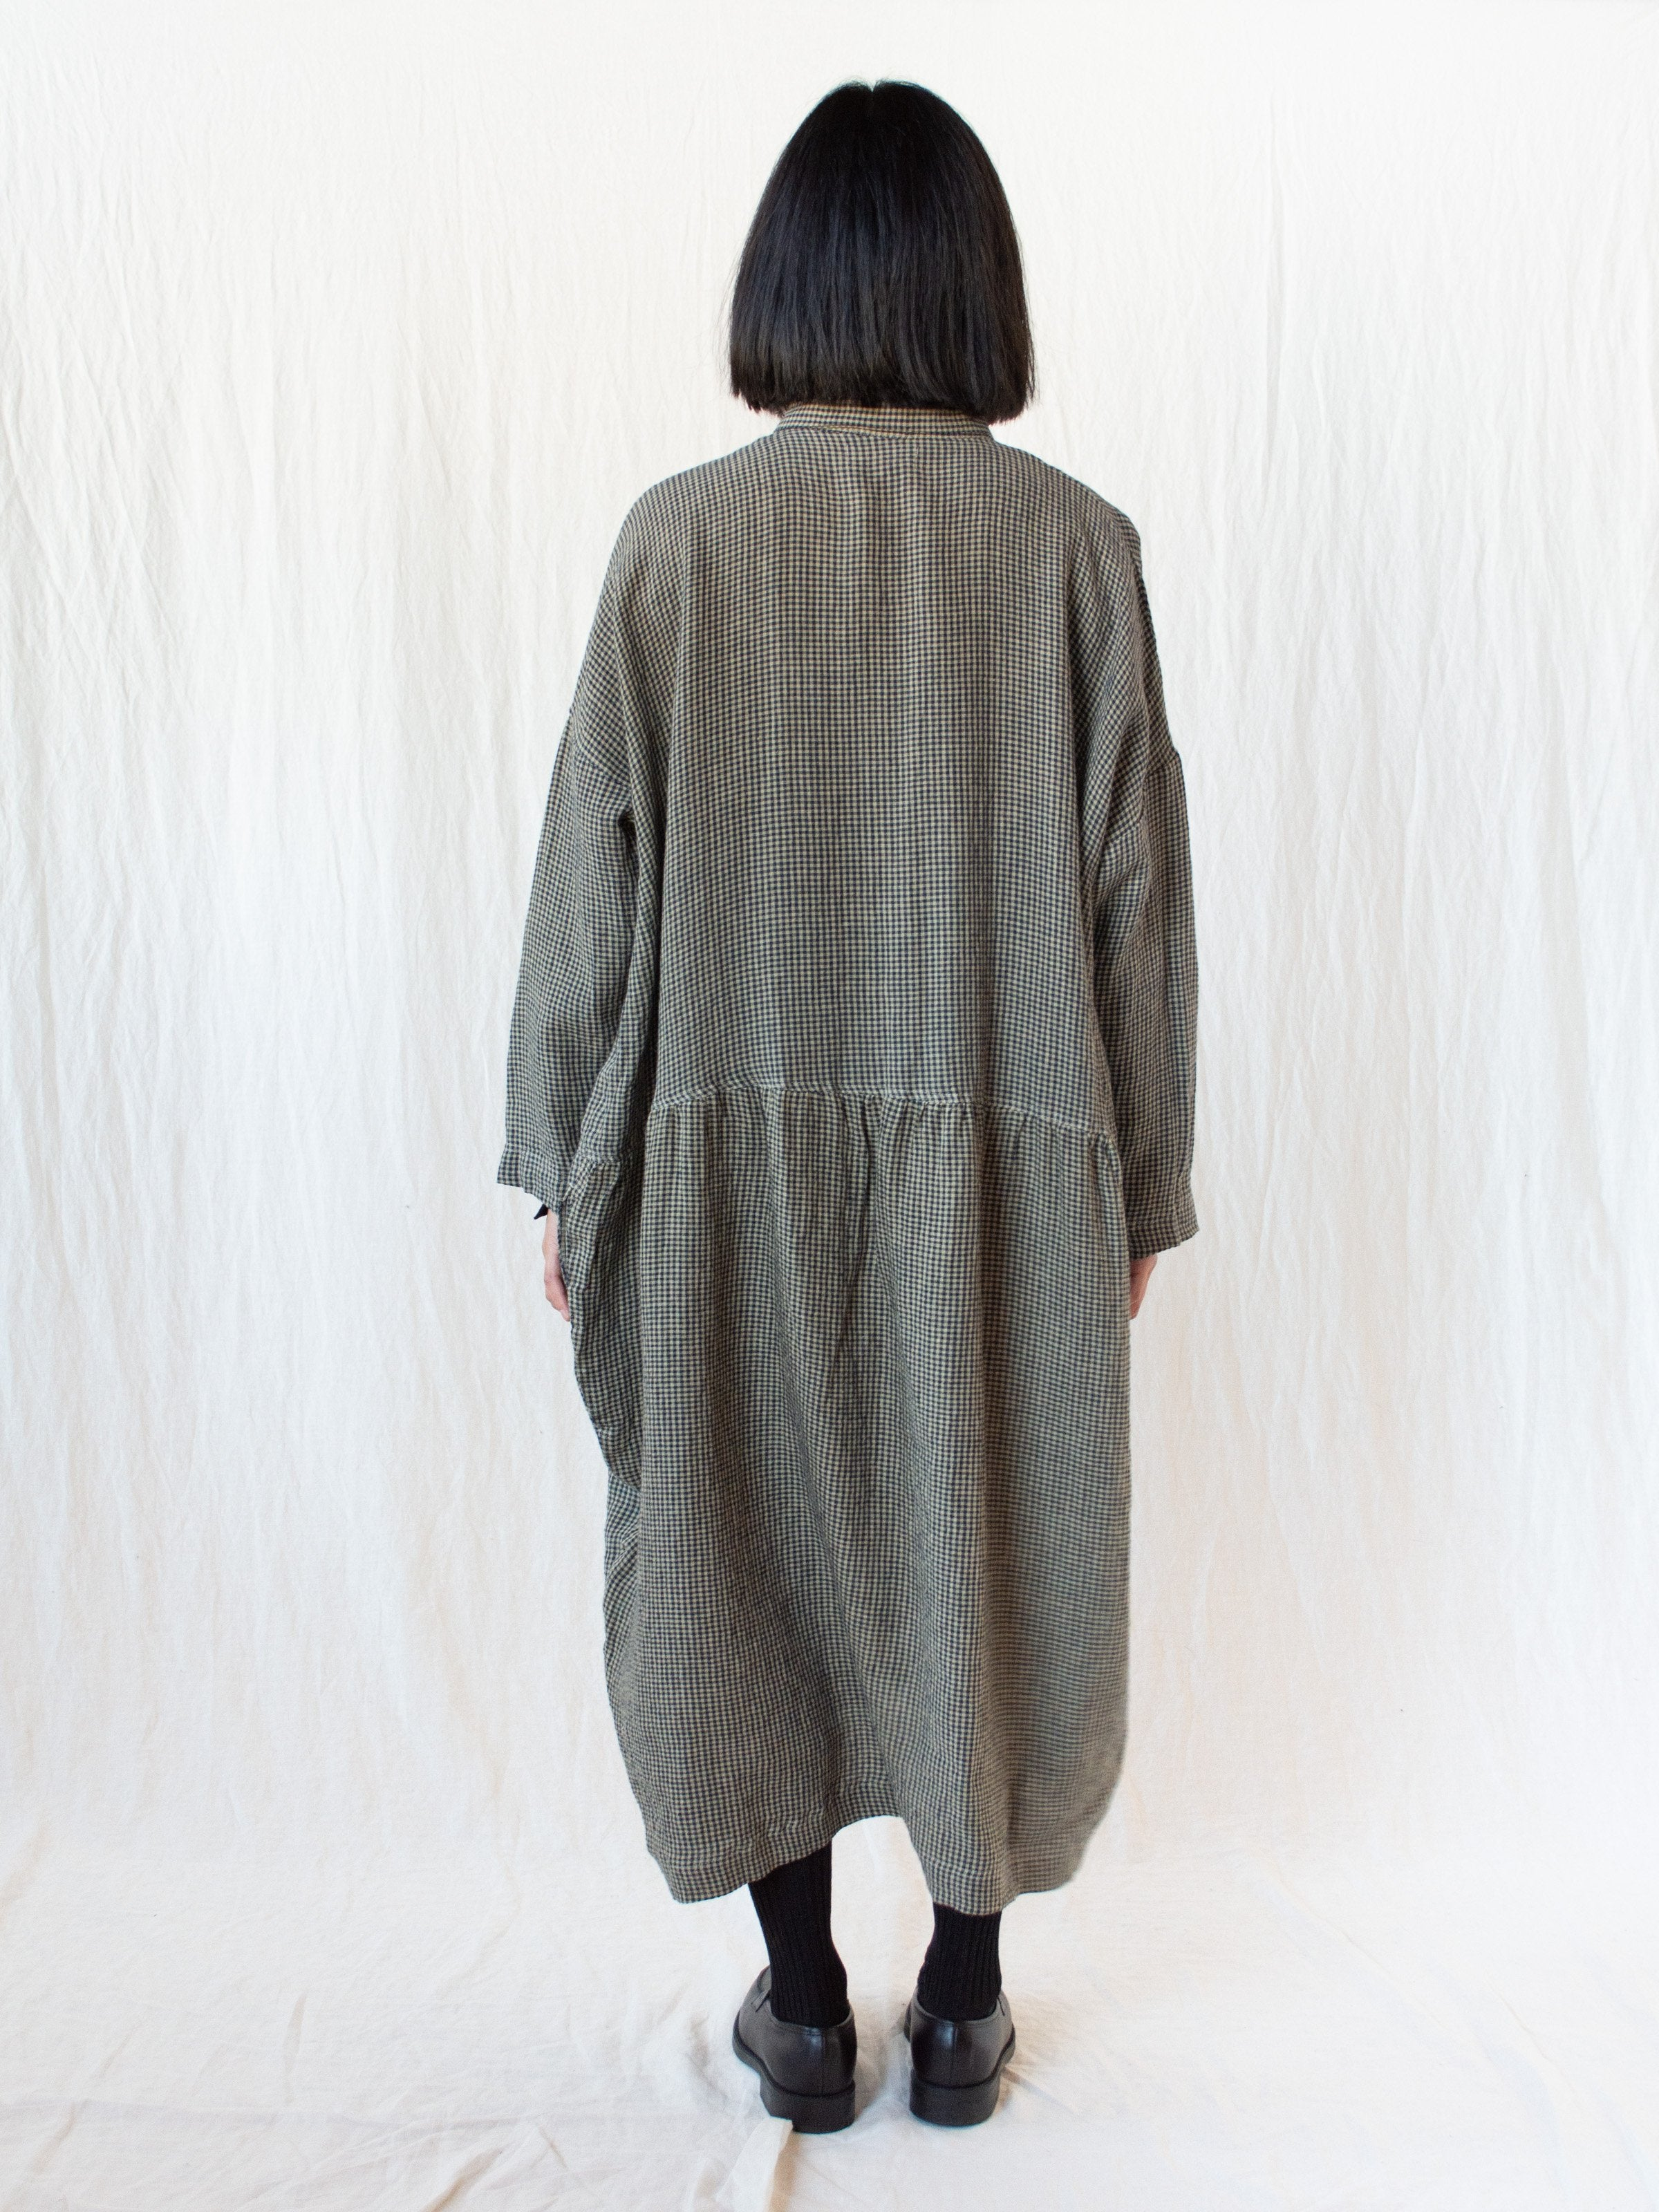 Namu Shop - Ichi Antiquites AZUMADAKI Linen Gingham Dress - Beige x Black